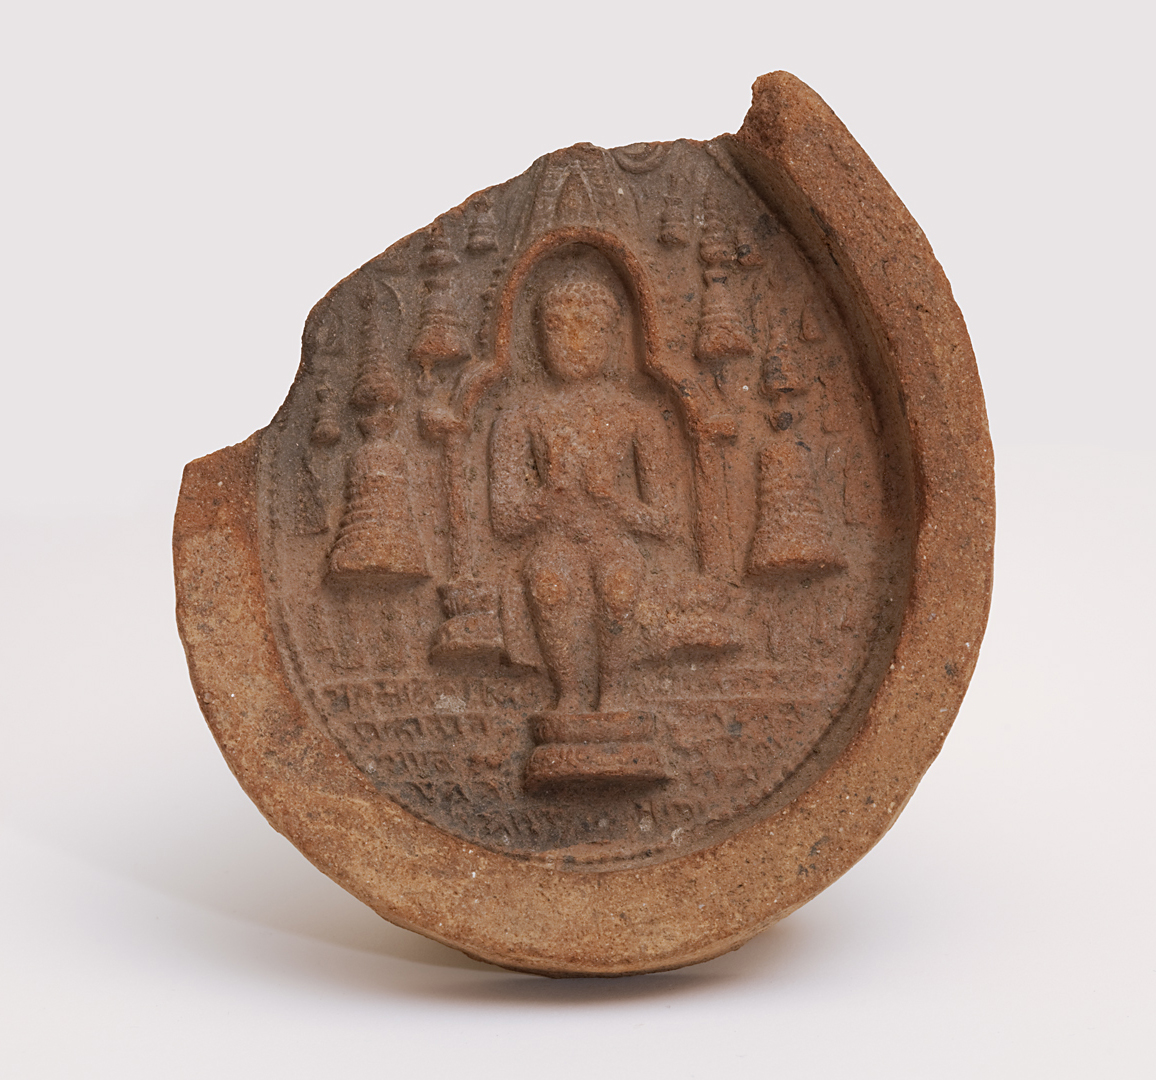 votive tablet (tsa-tsa)